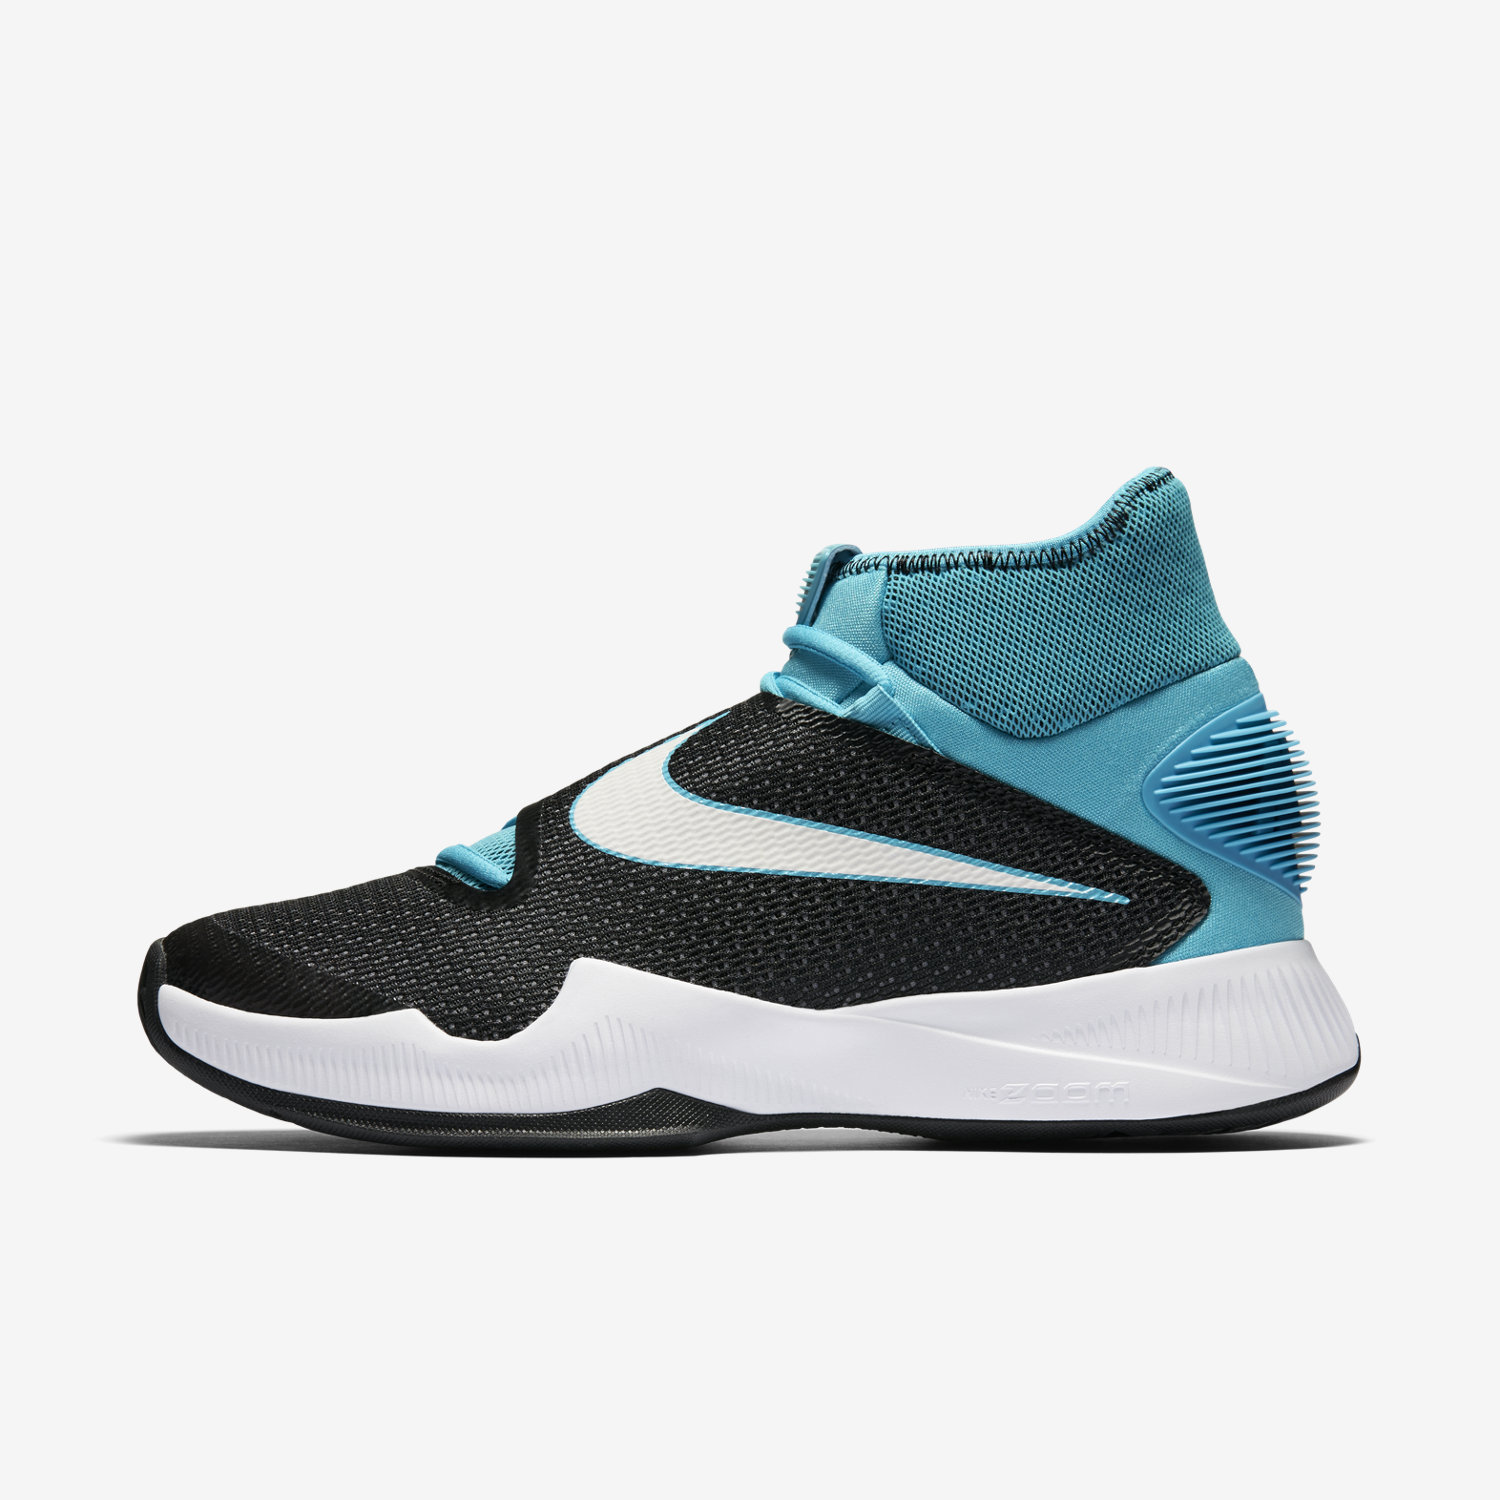 best website 05af8 d5409 nike knit shoes hyperrev basketball shoes